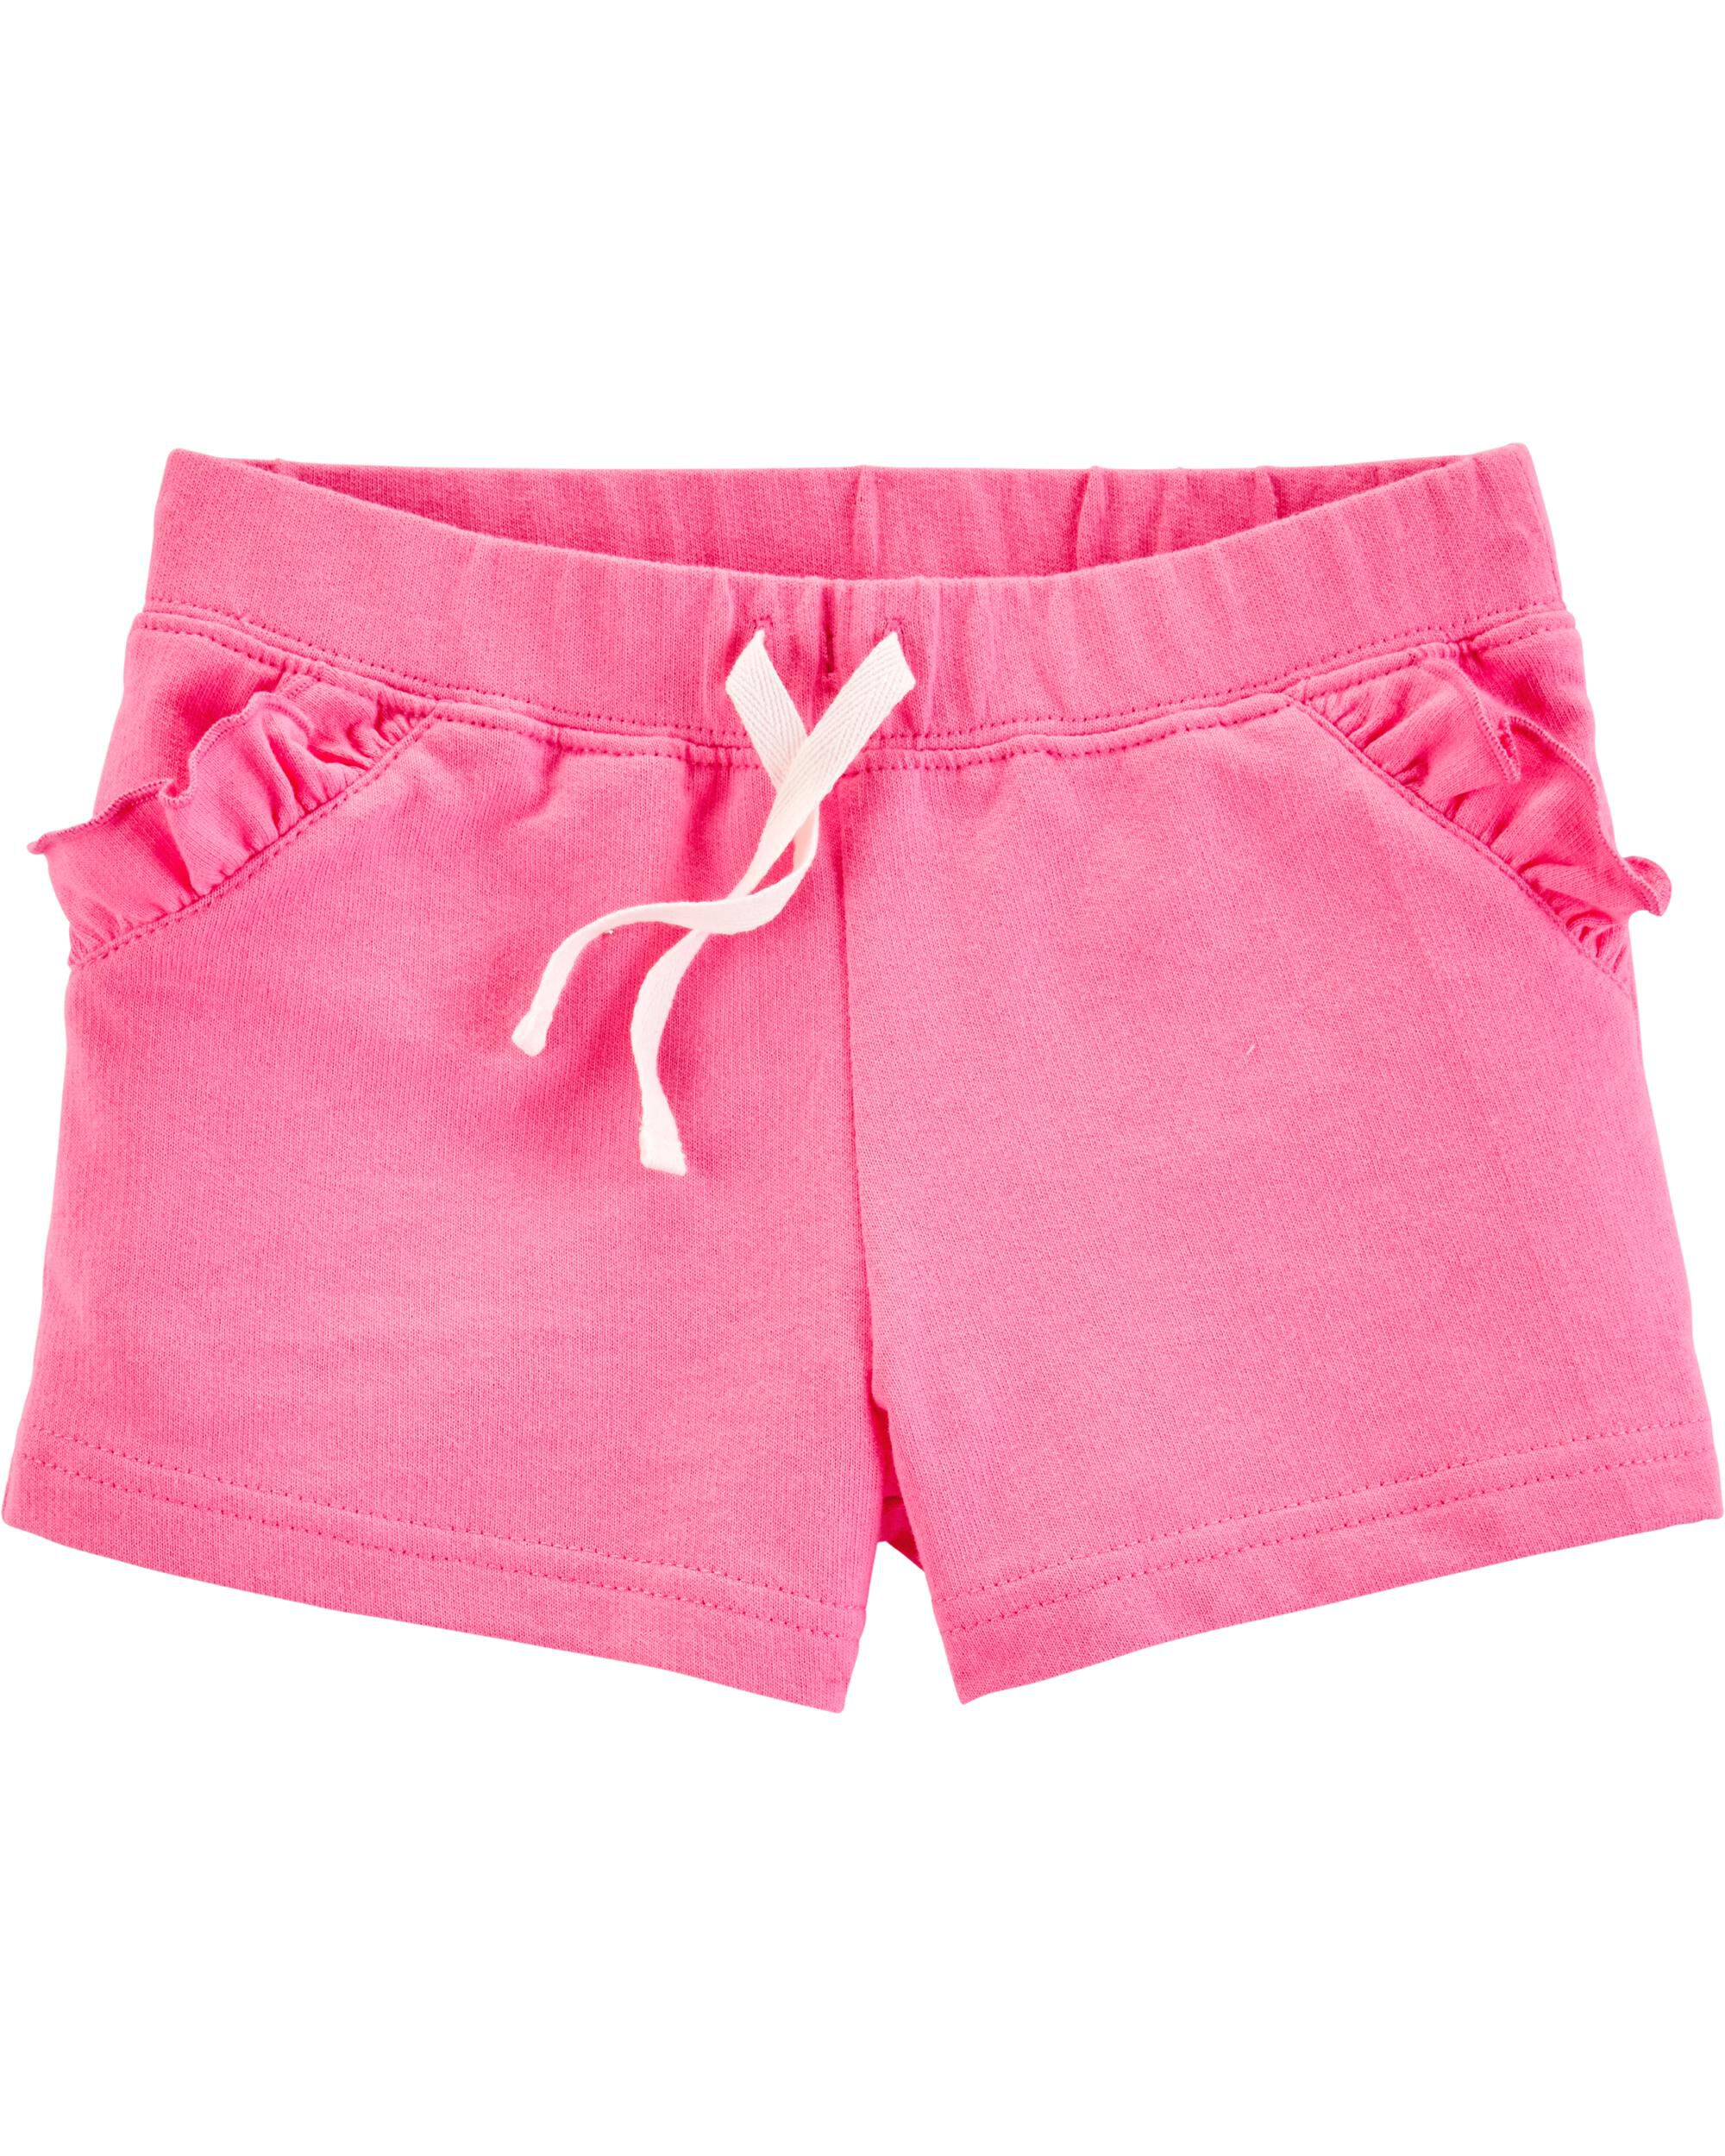 *Clearance*  Ruffle Pull-On French Terry Shorts